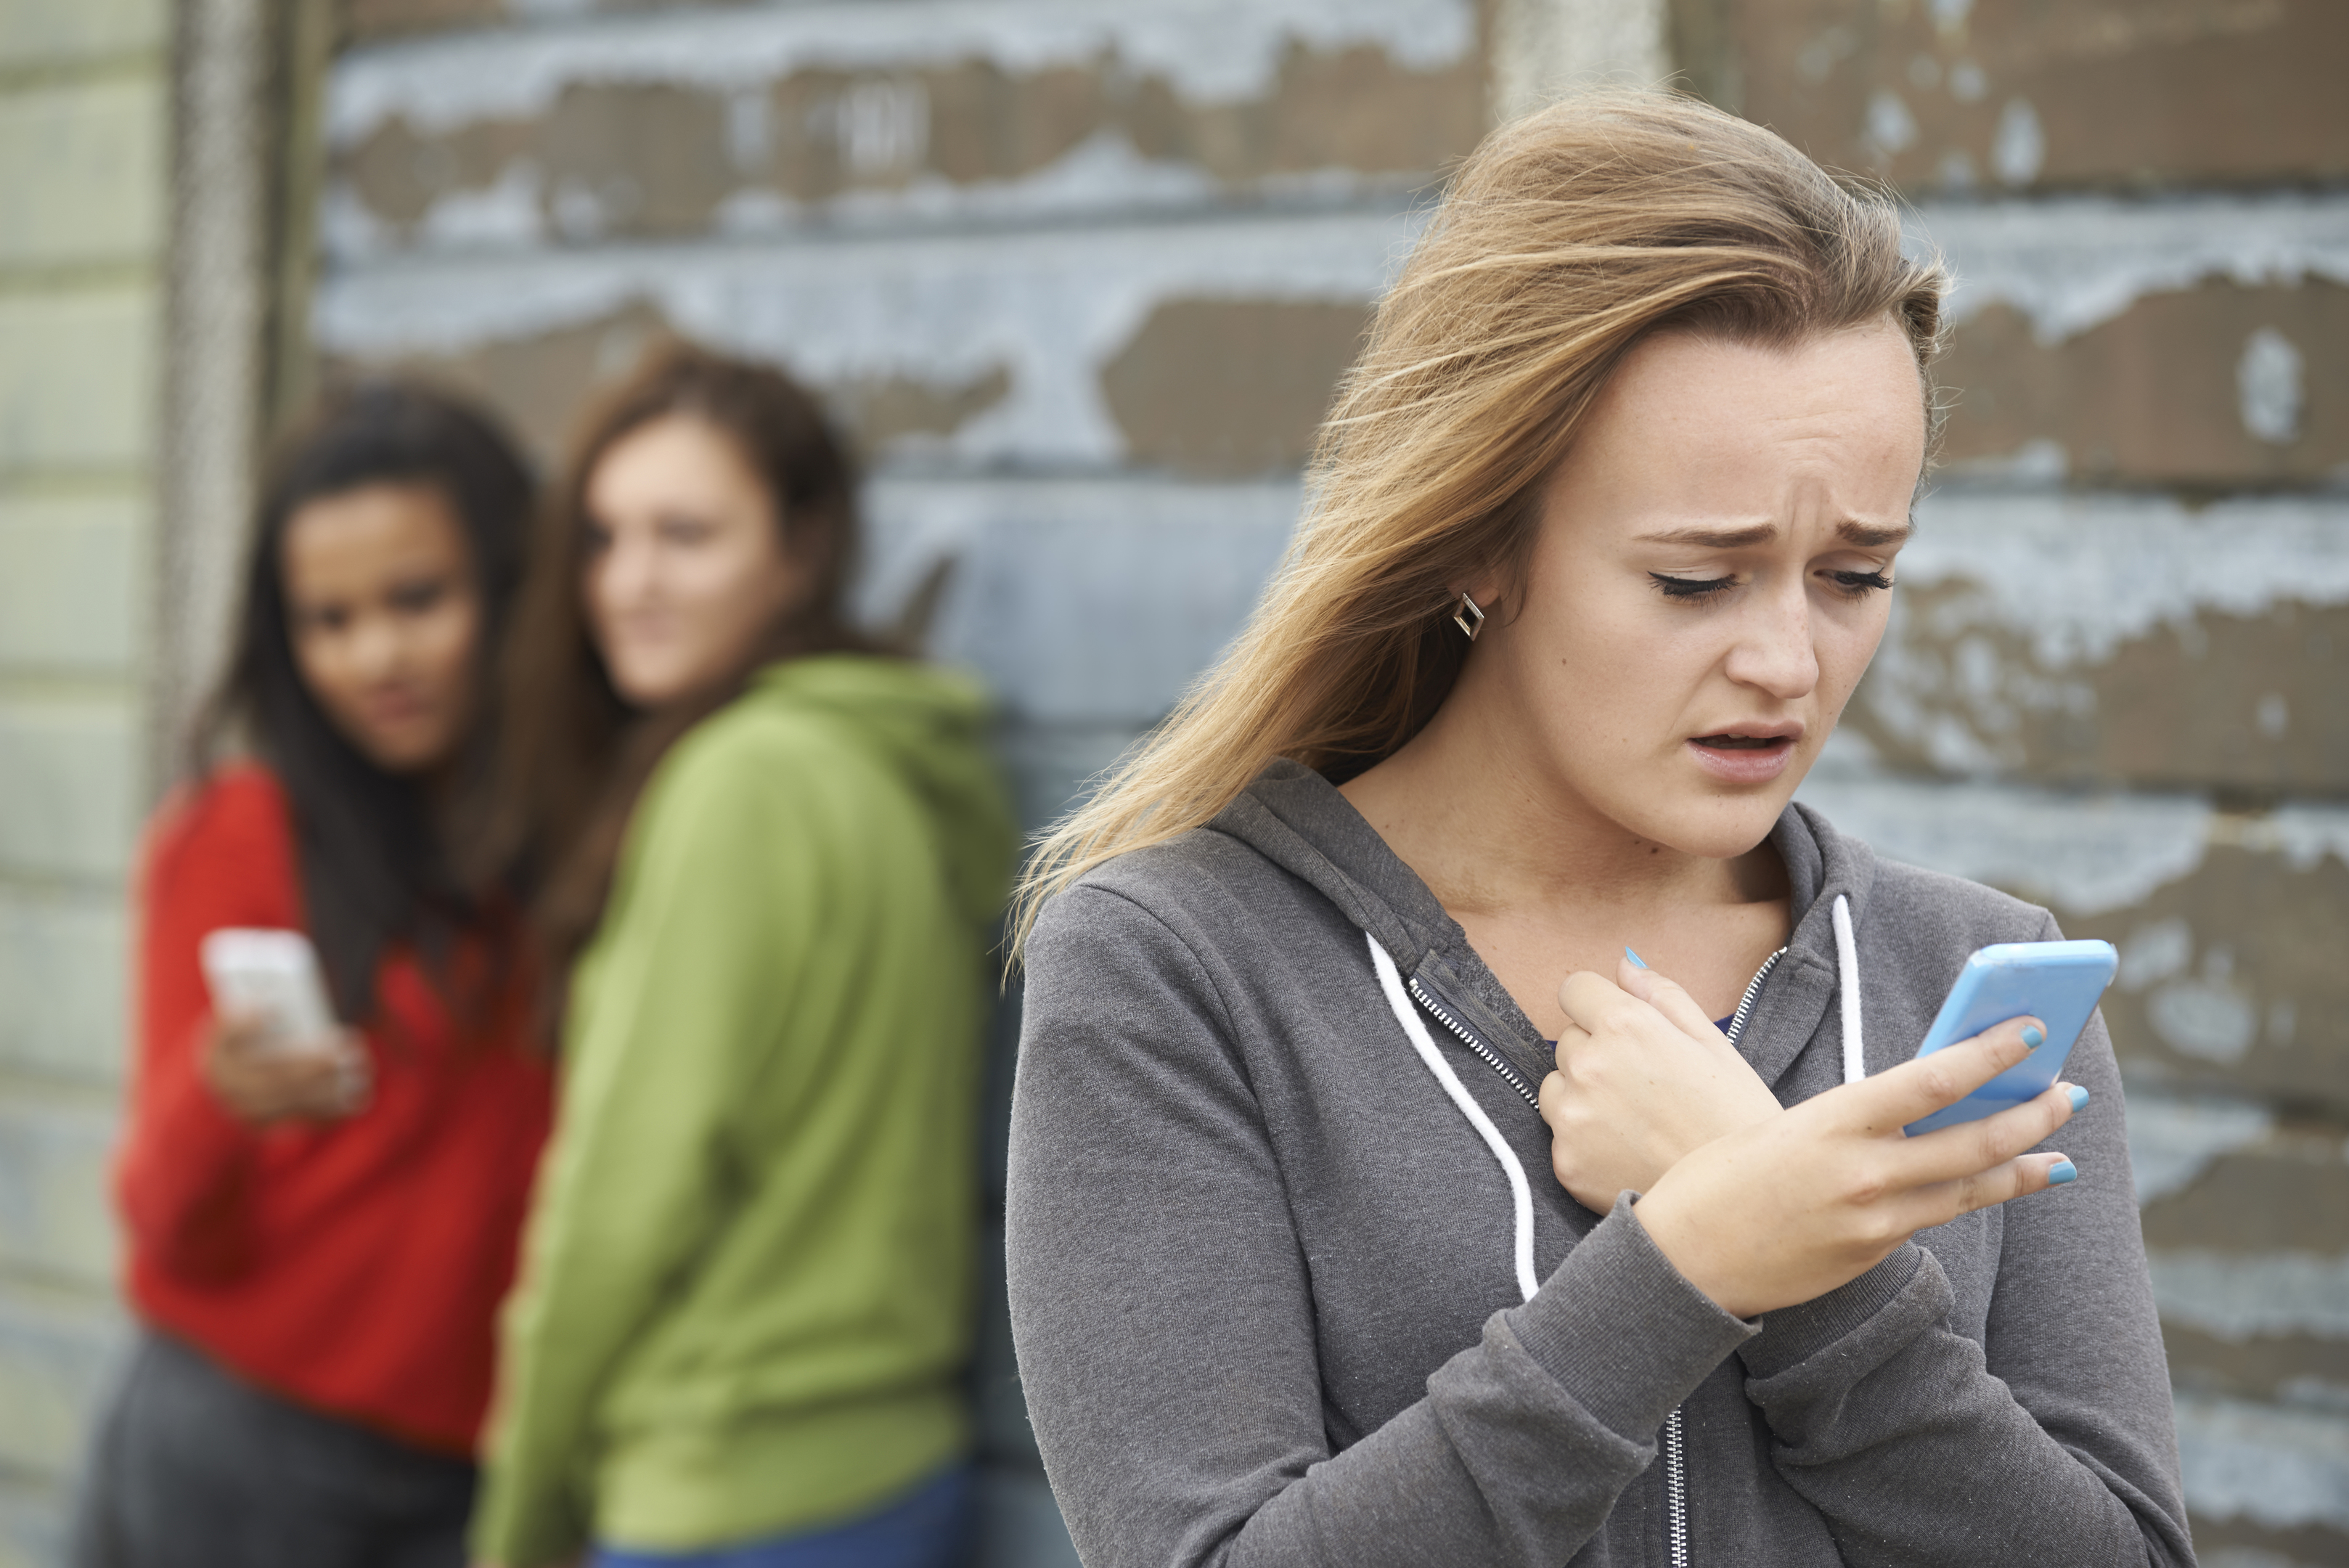 Figures reveal the numbers bullied over five years.